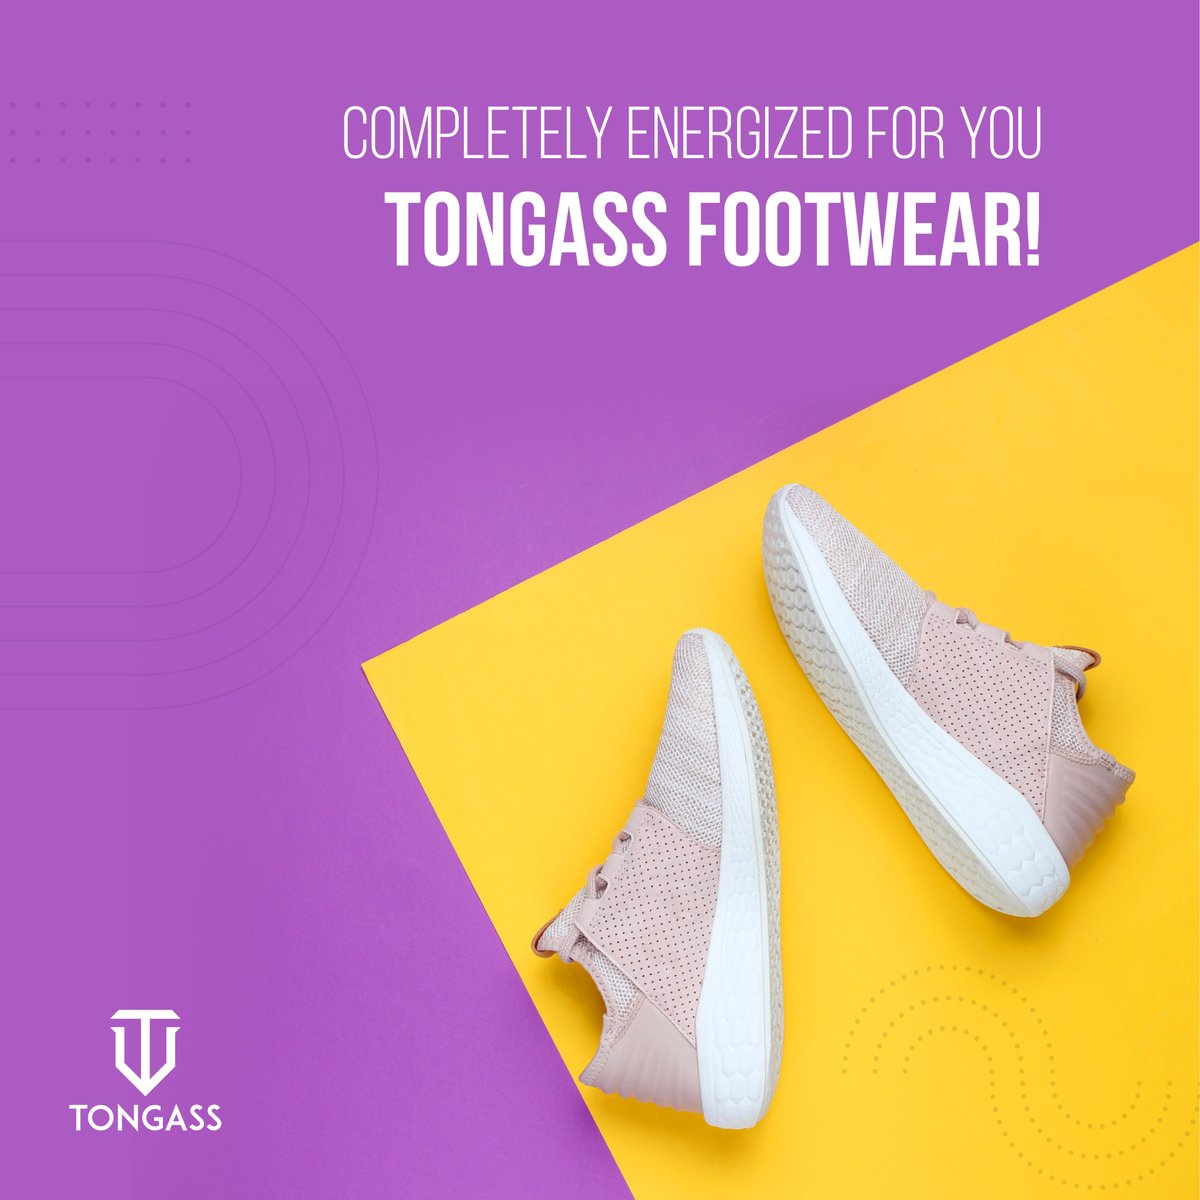 Completely Energized for you! - Tongass Footwear   Follow us to know more  @tongass.official   #Tongass #lifestyle #footwear  #footweardesign #featuredfootwear #menwithfootwear #footwears #womensfootwear #luxuryfootwear #kidsfootwear #footwearfashion #lacrossefootwearpic.twitter.com/VIdxHOxyes